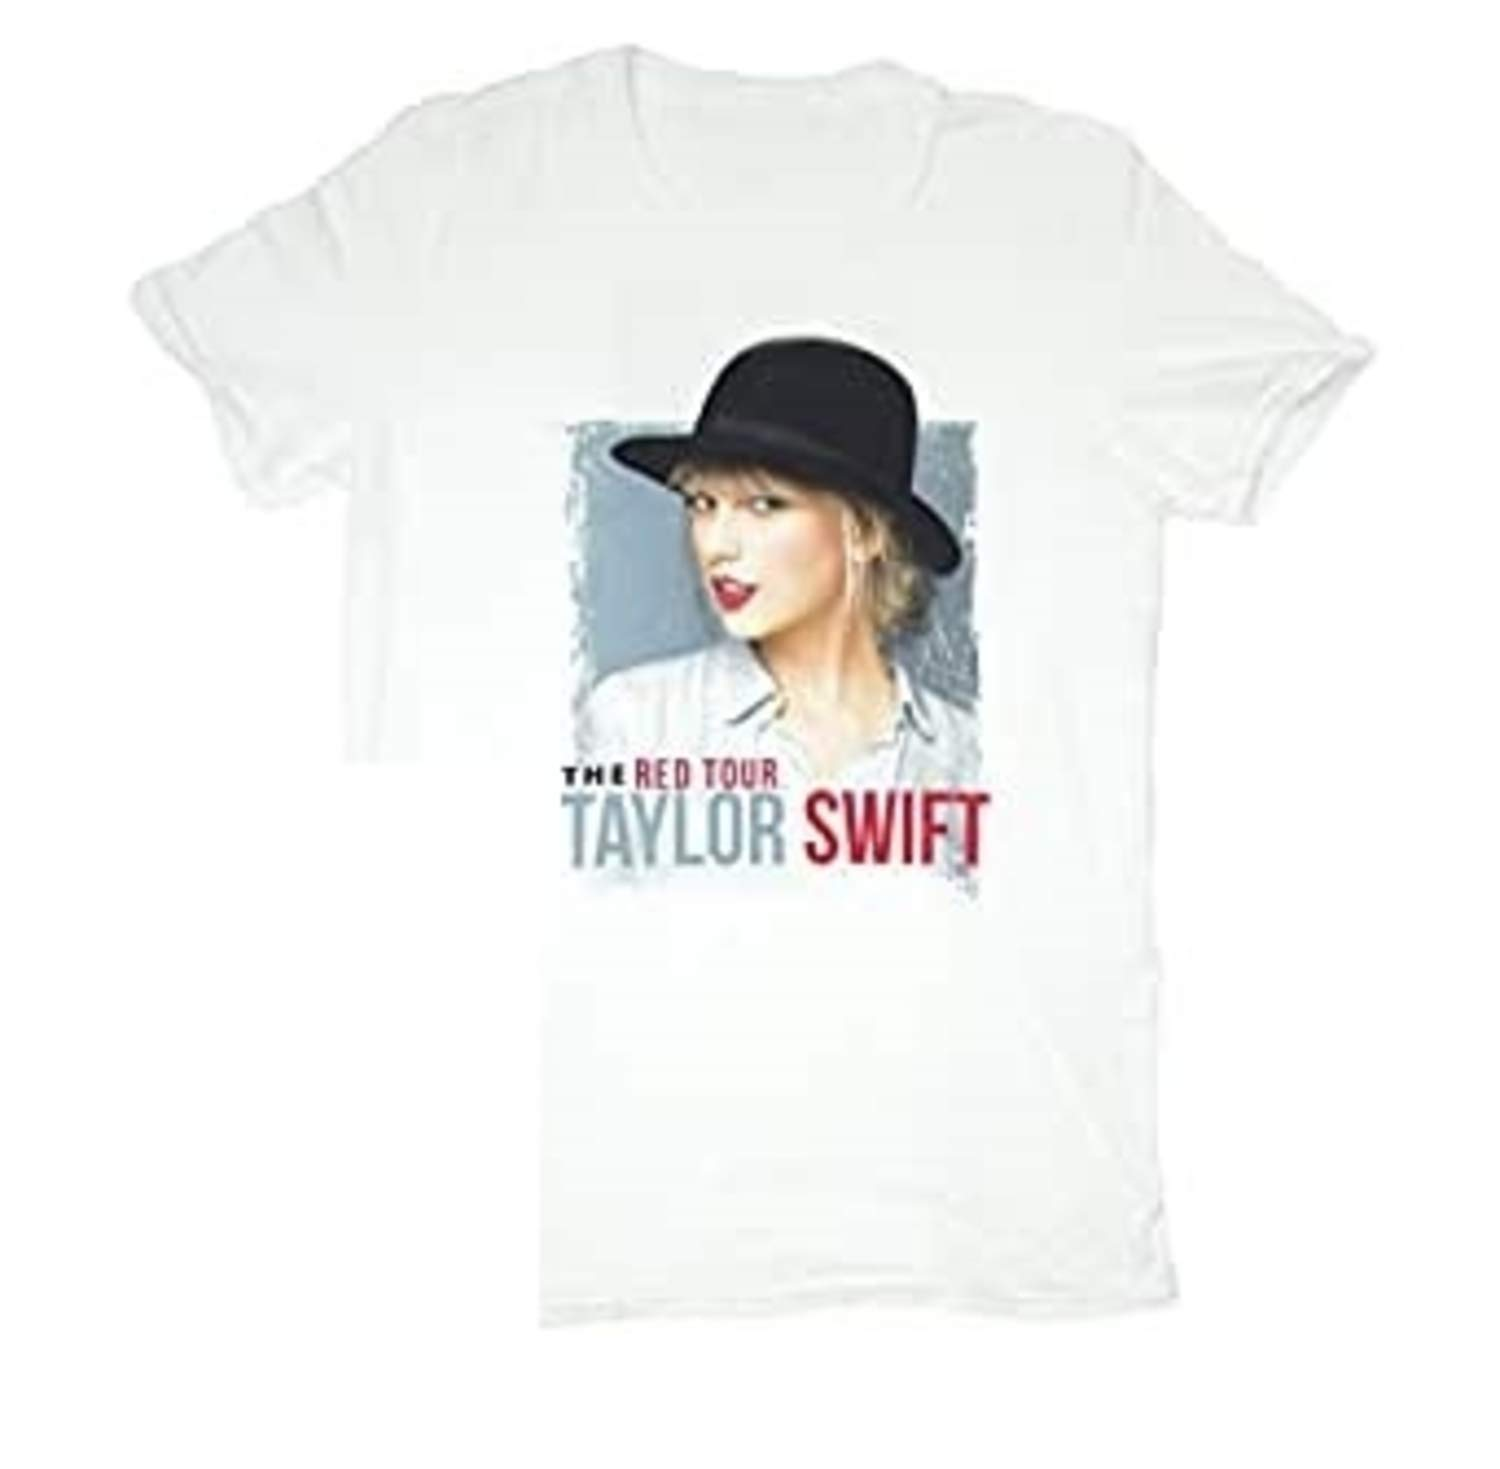 Taylor Swift T Shirt Vintage White Hat Tour Tee Youth Small Medium X Large Buy Online In Gibraltar At Desertcart